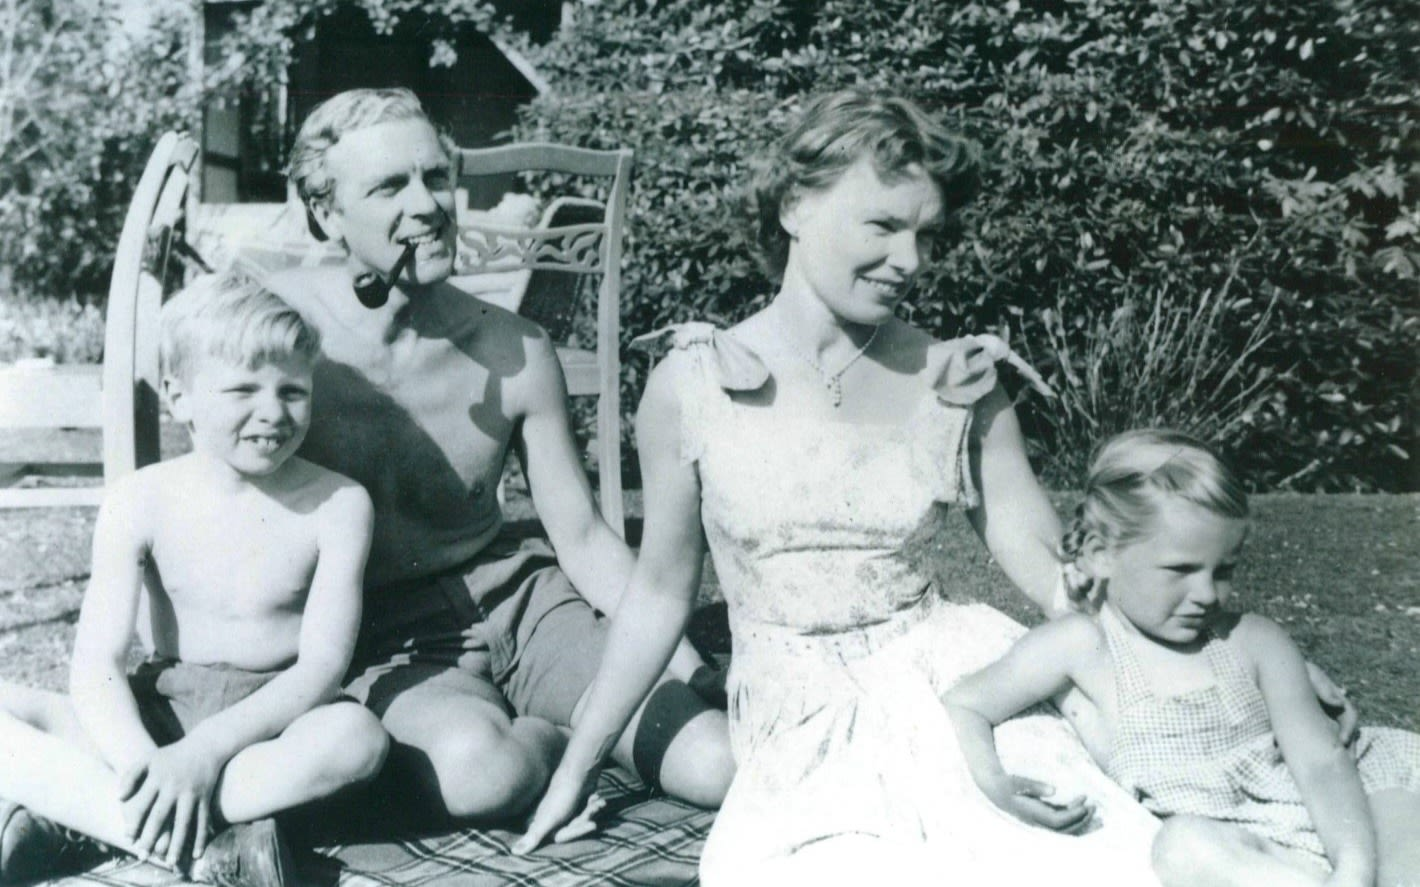 a family photo of Richard Branson from when he was a young boy